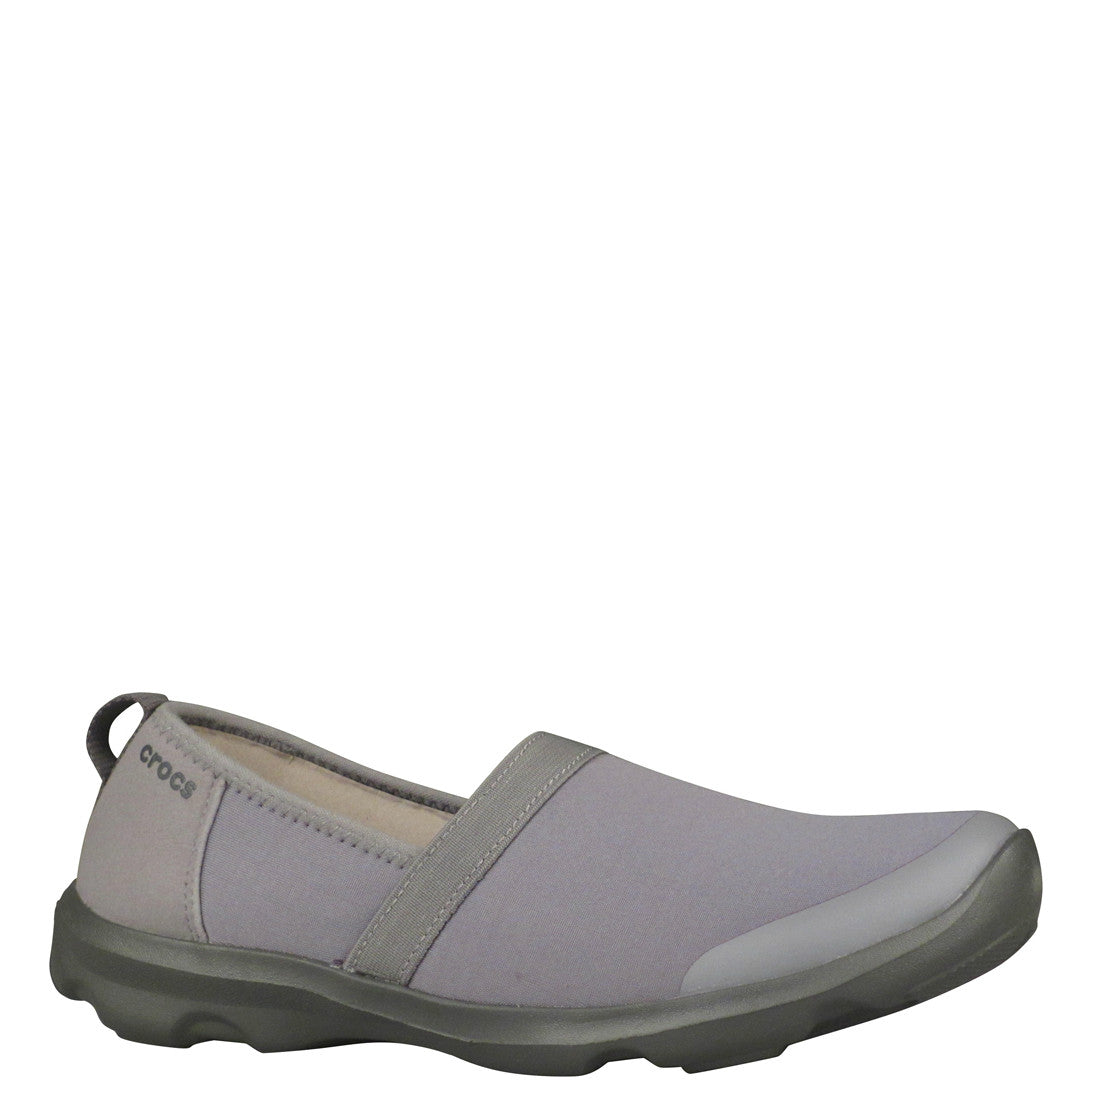 Crocs Women's Duet Busy Day 2.0 Satya A-Line - Smoke/Graphite 201884-08G